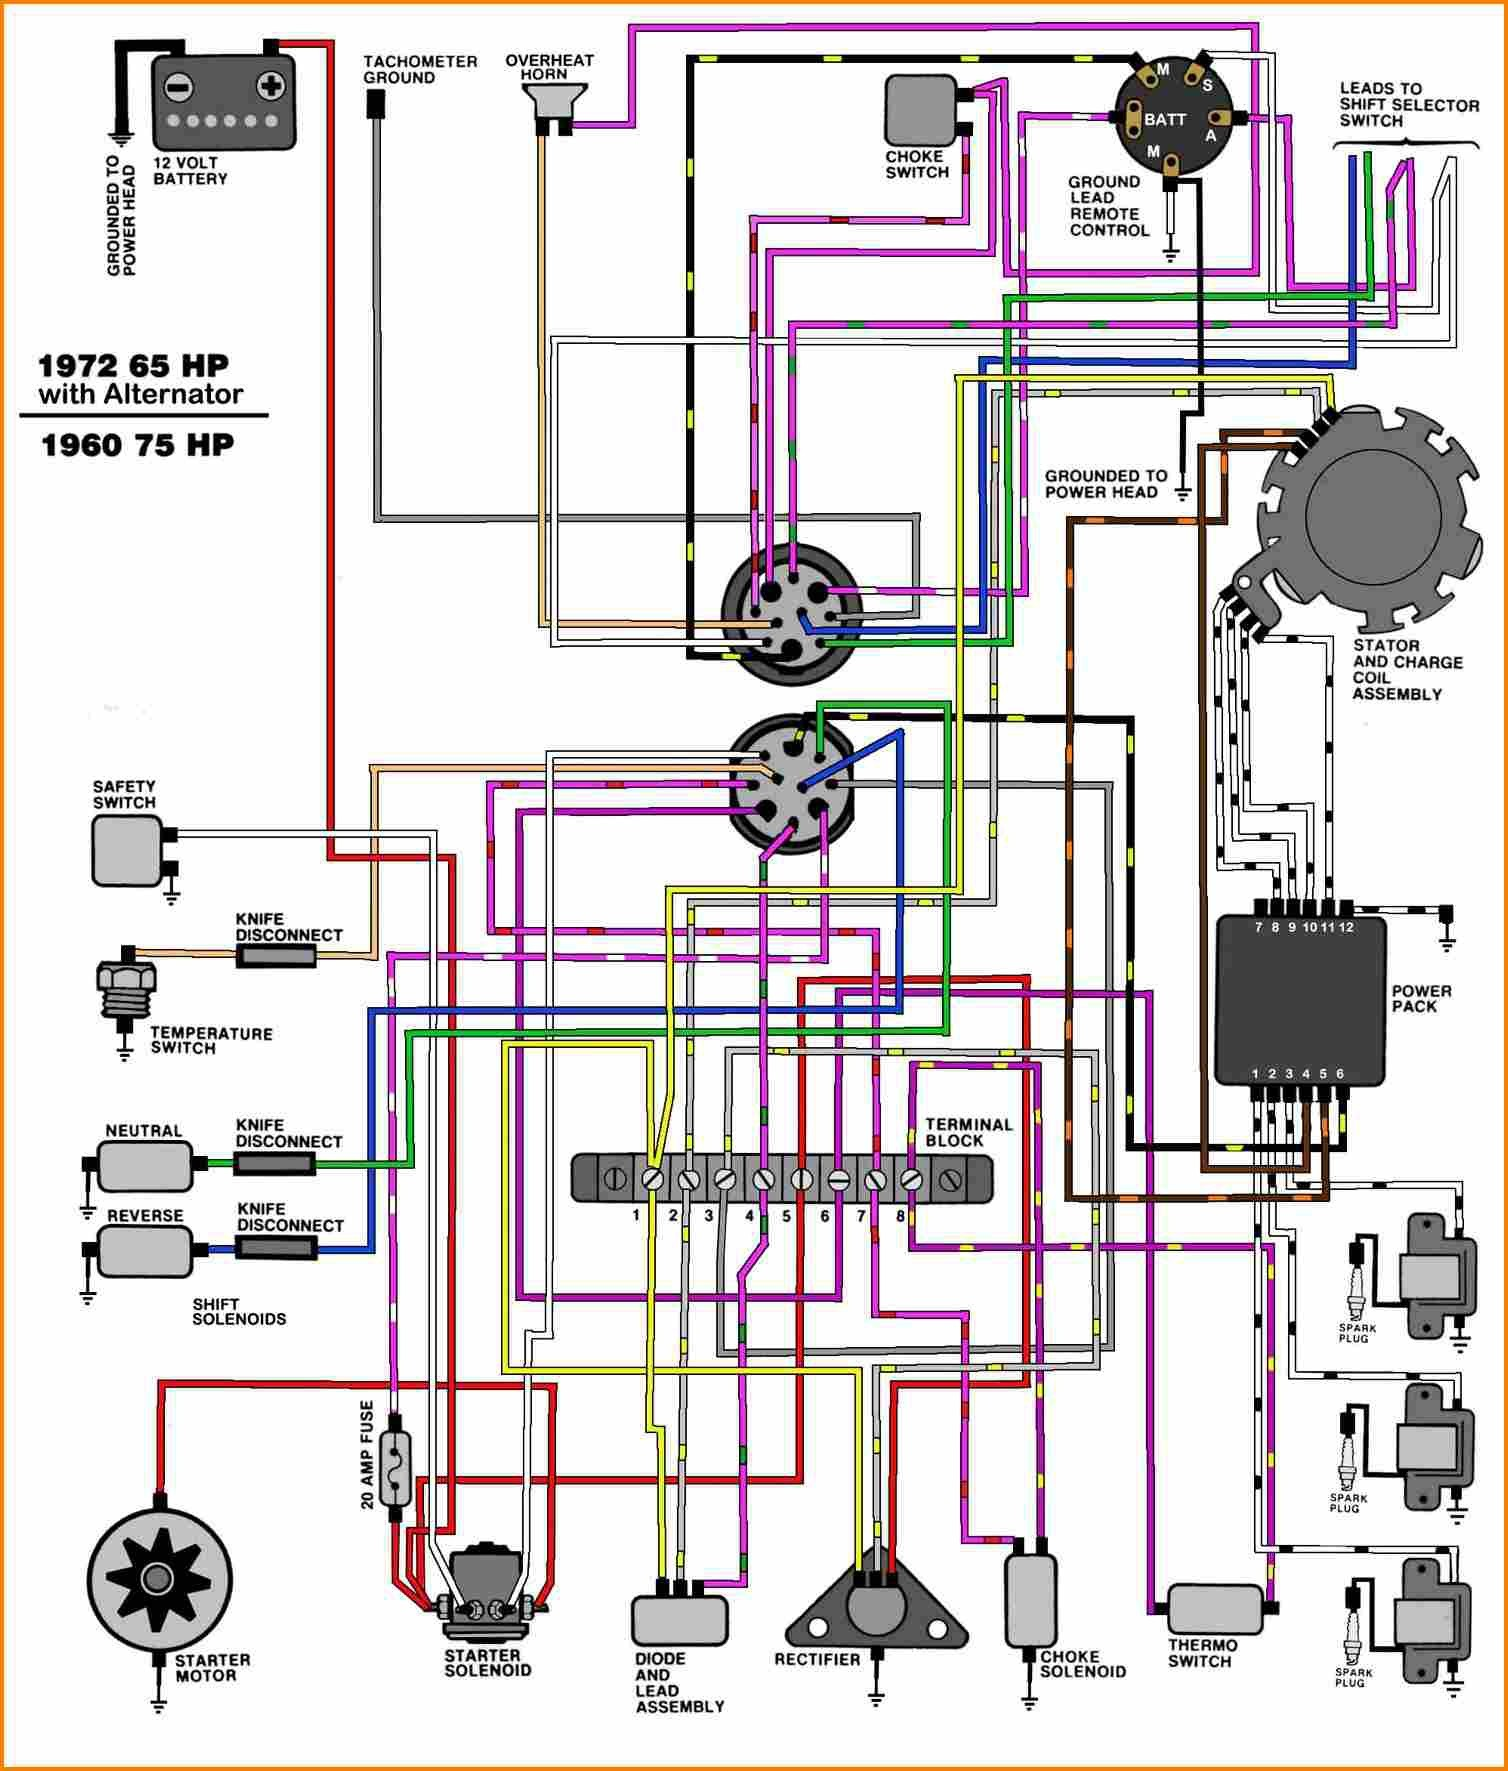 evinrude 115 ficht wiring diagram stereo for 1994 toyota 4runner free picture schematic u2022